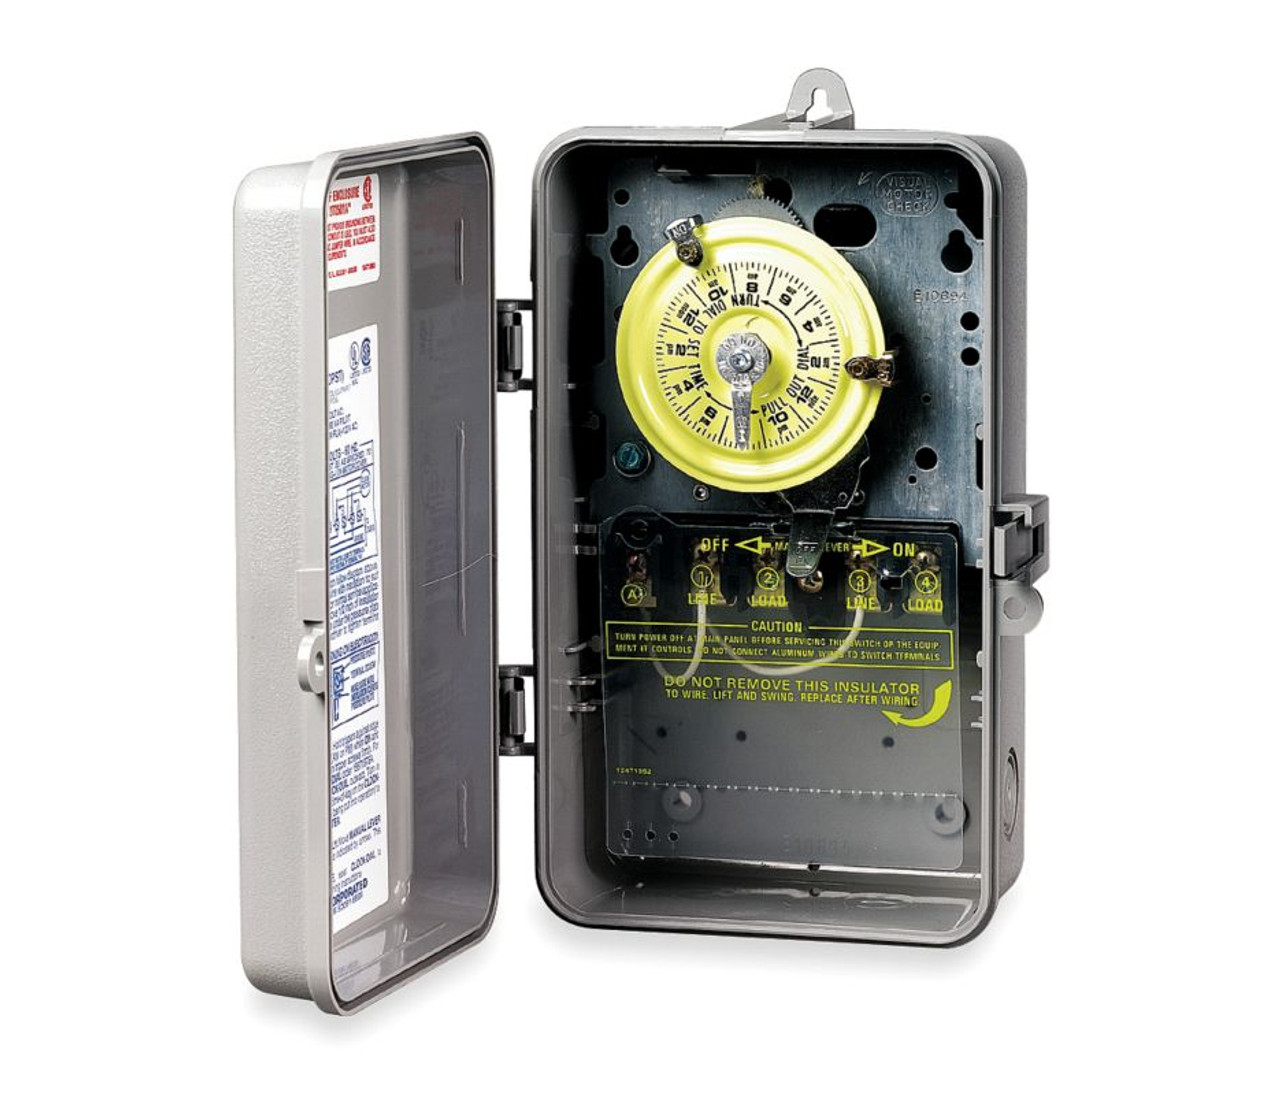 t103 intermatic timer instructions